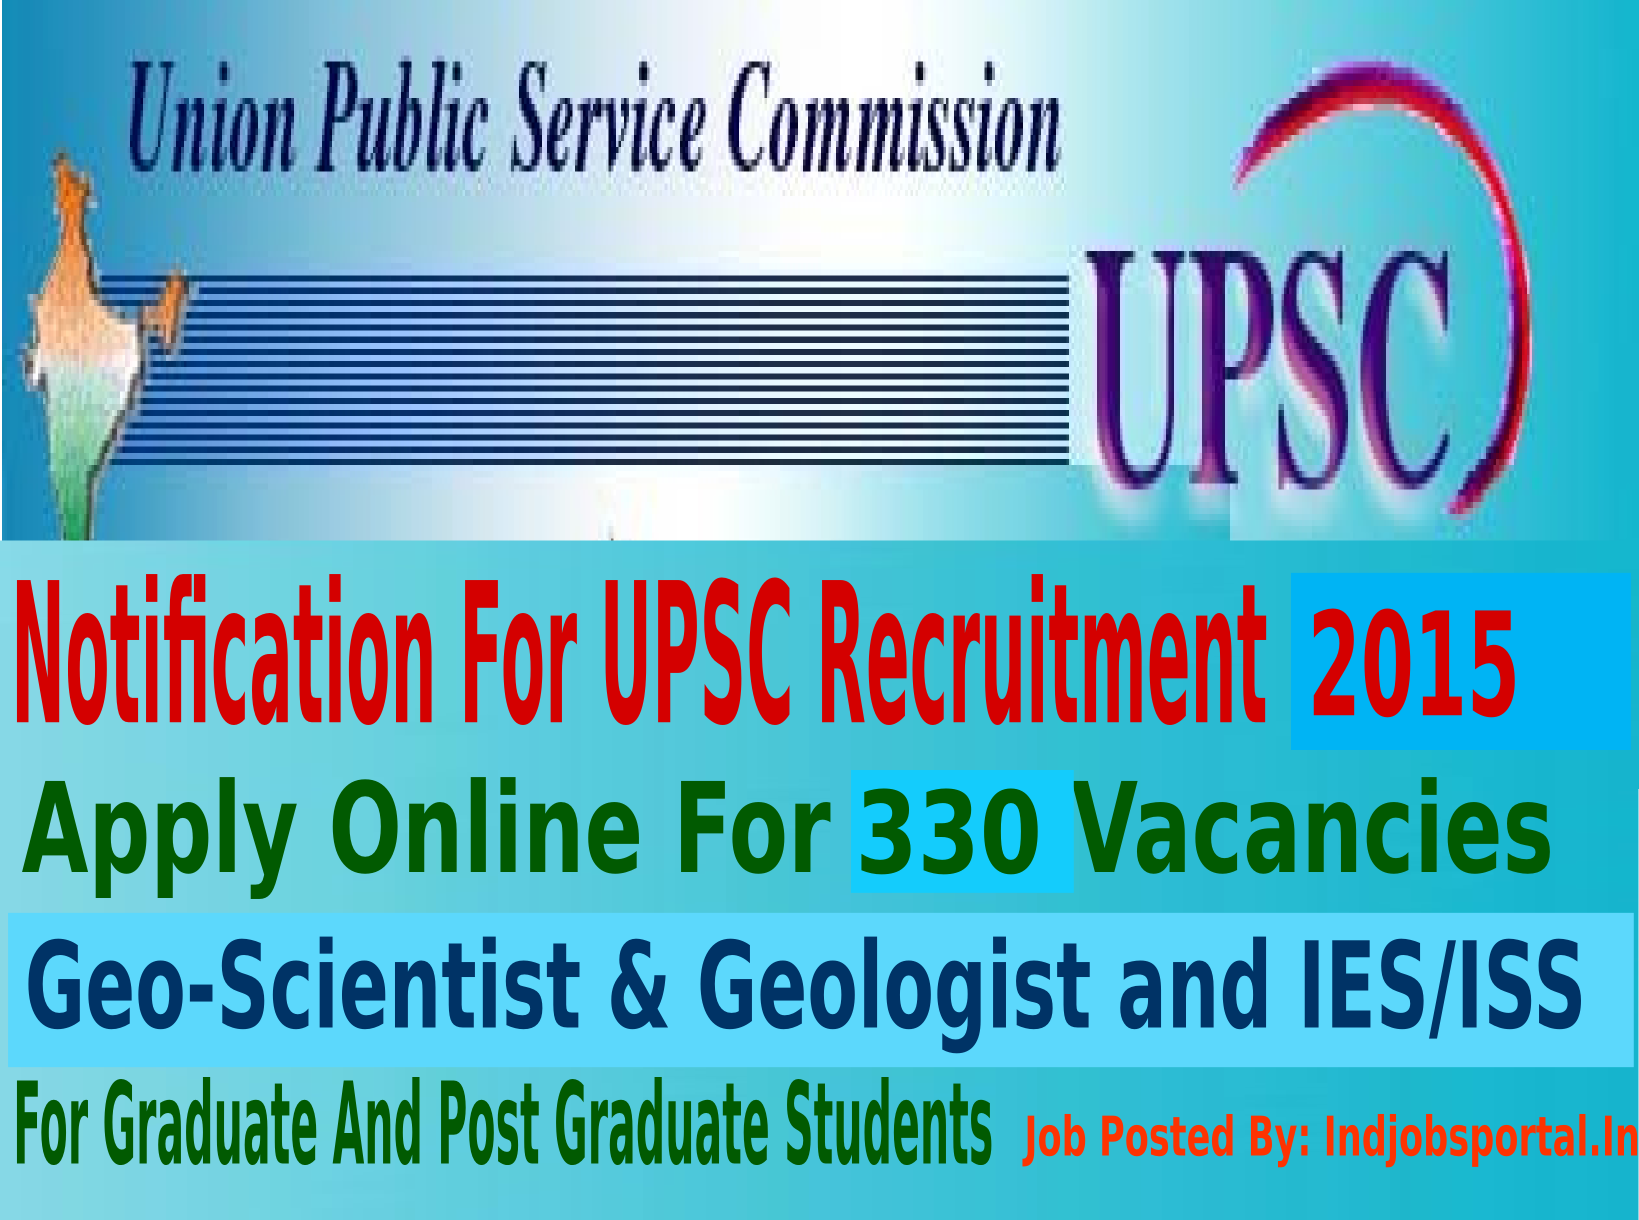 UPSC Recruitment 2015 For 330 Combined Geo-Scientist & Geologist and IES/ISS Posts